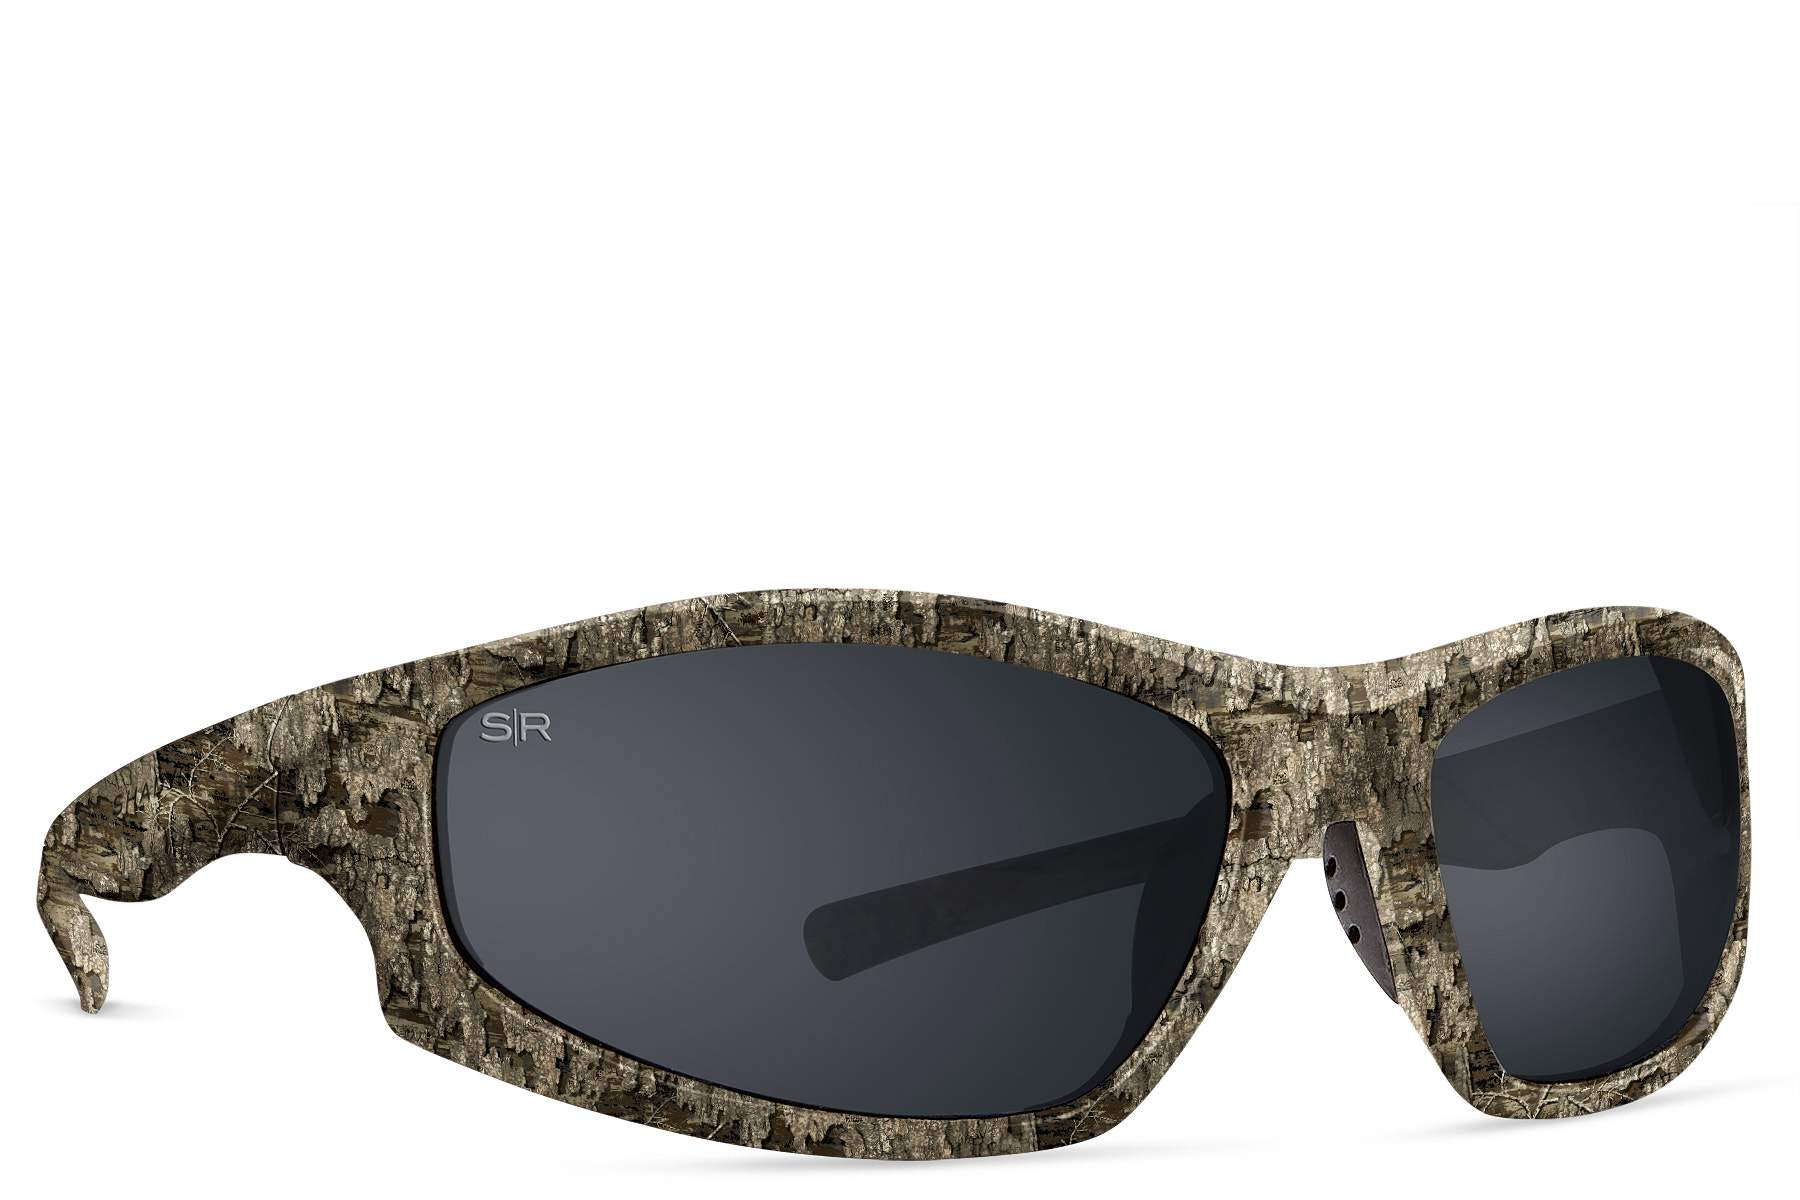 X Series - Realtree Timber Edition : Black Polarized